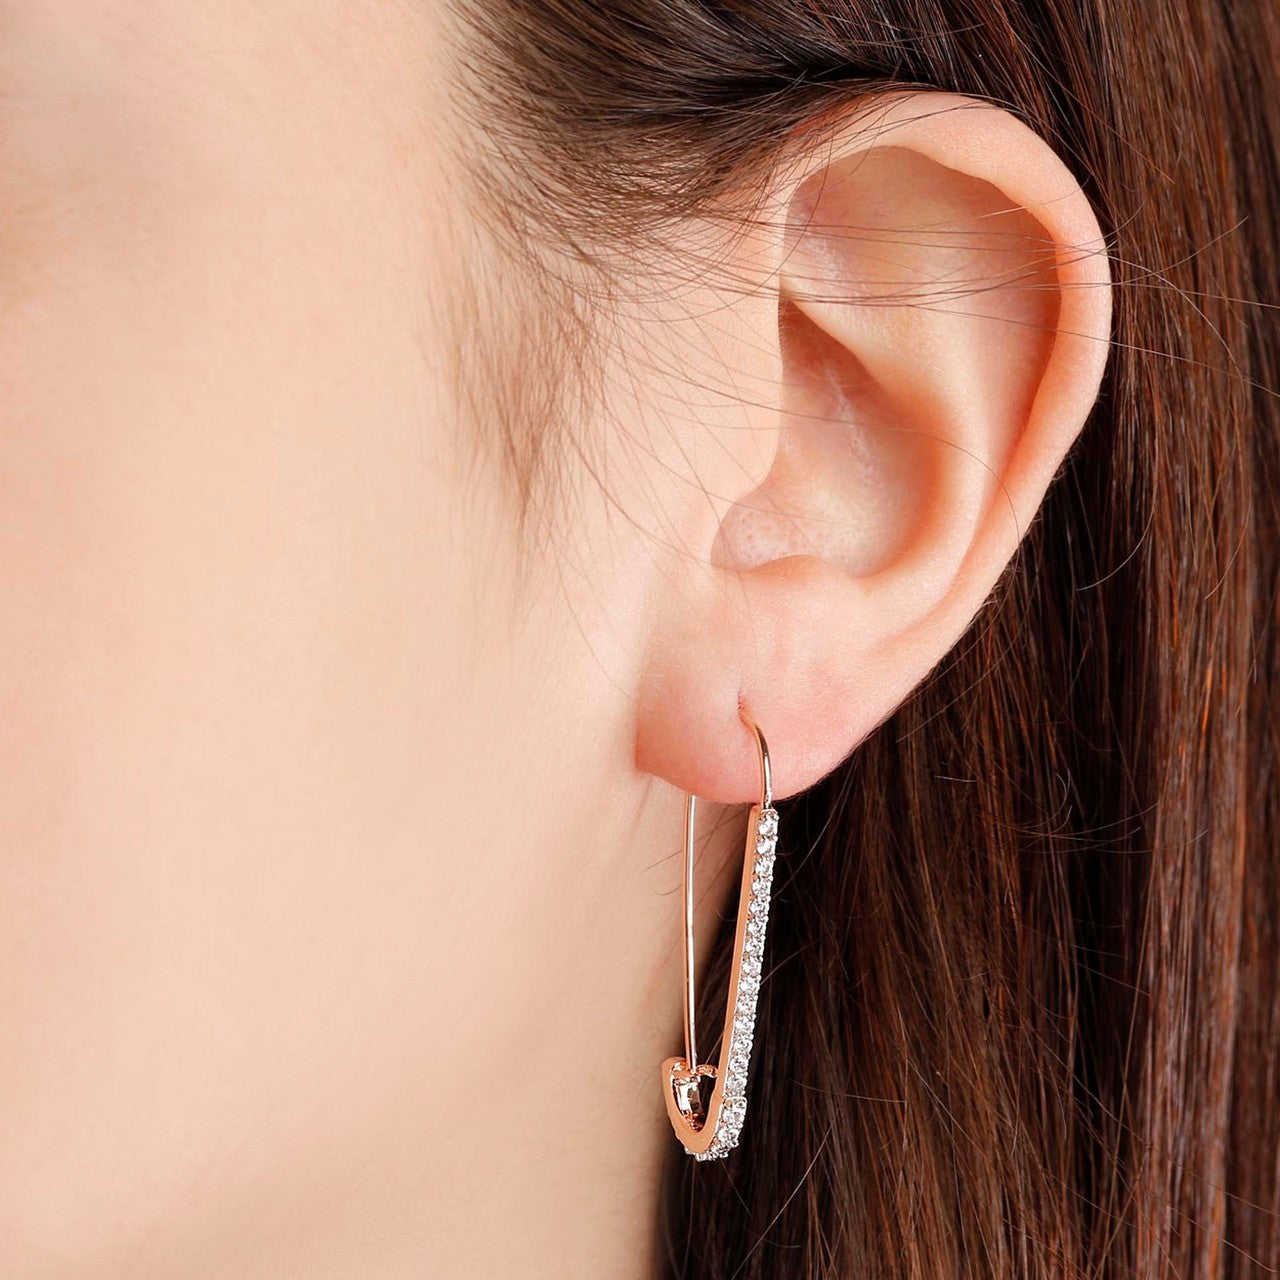 worn Pin Shaped Earrings